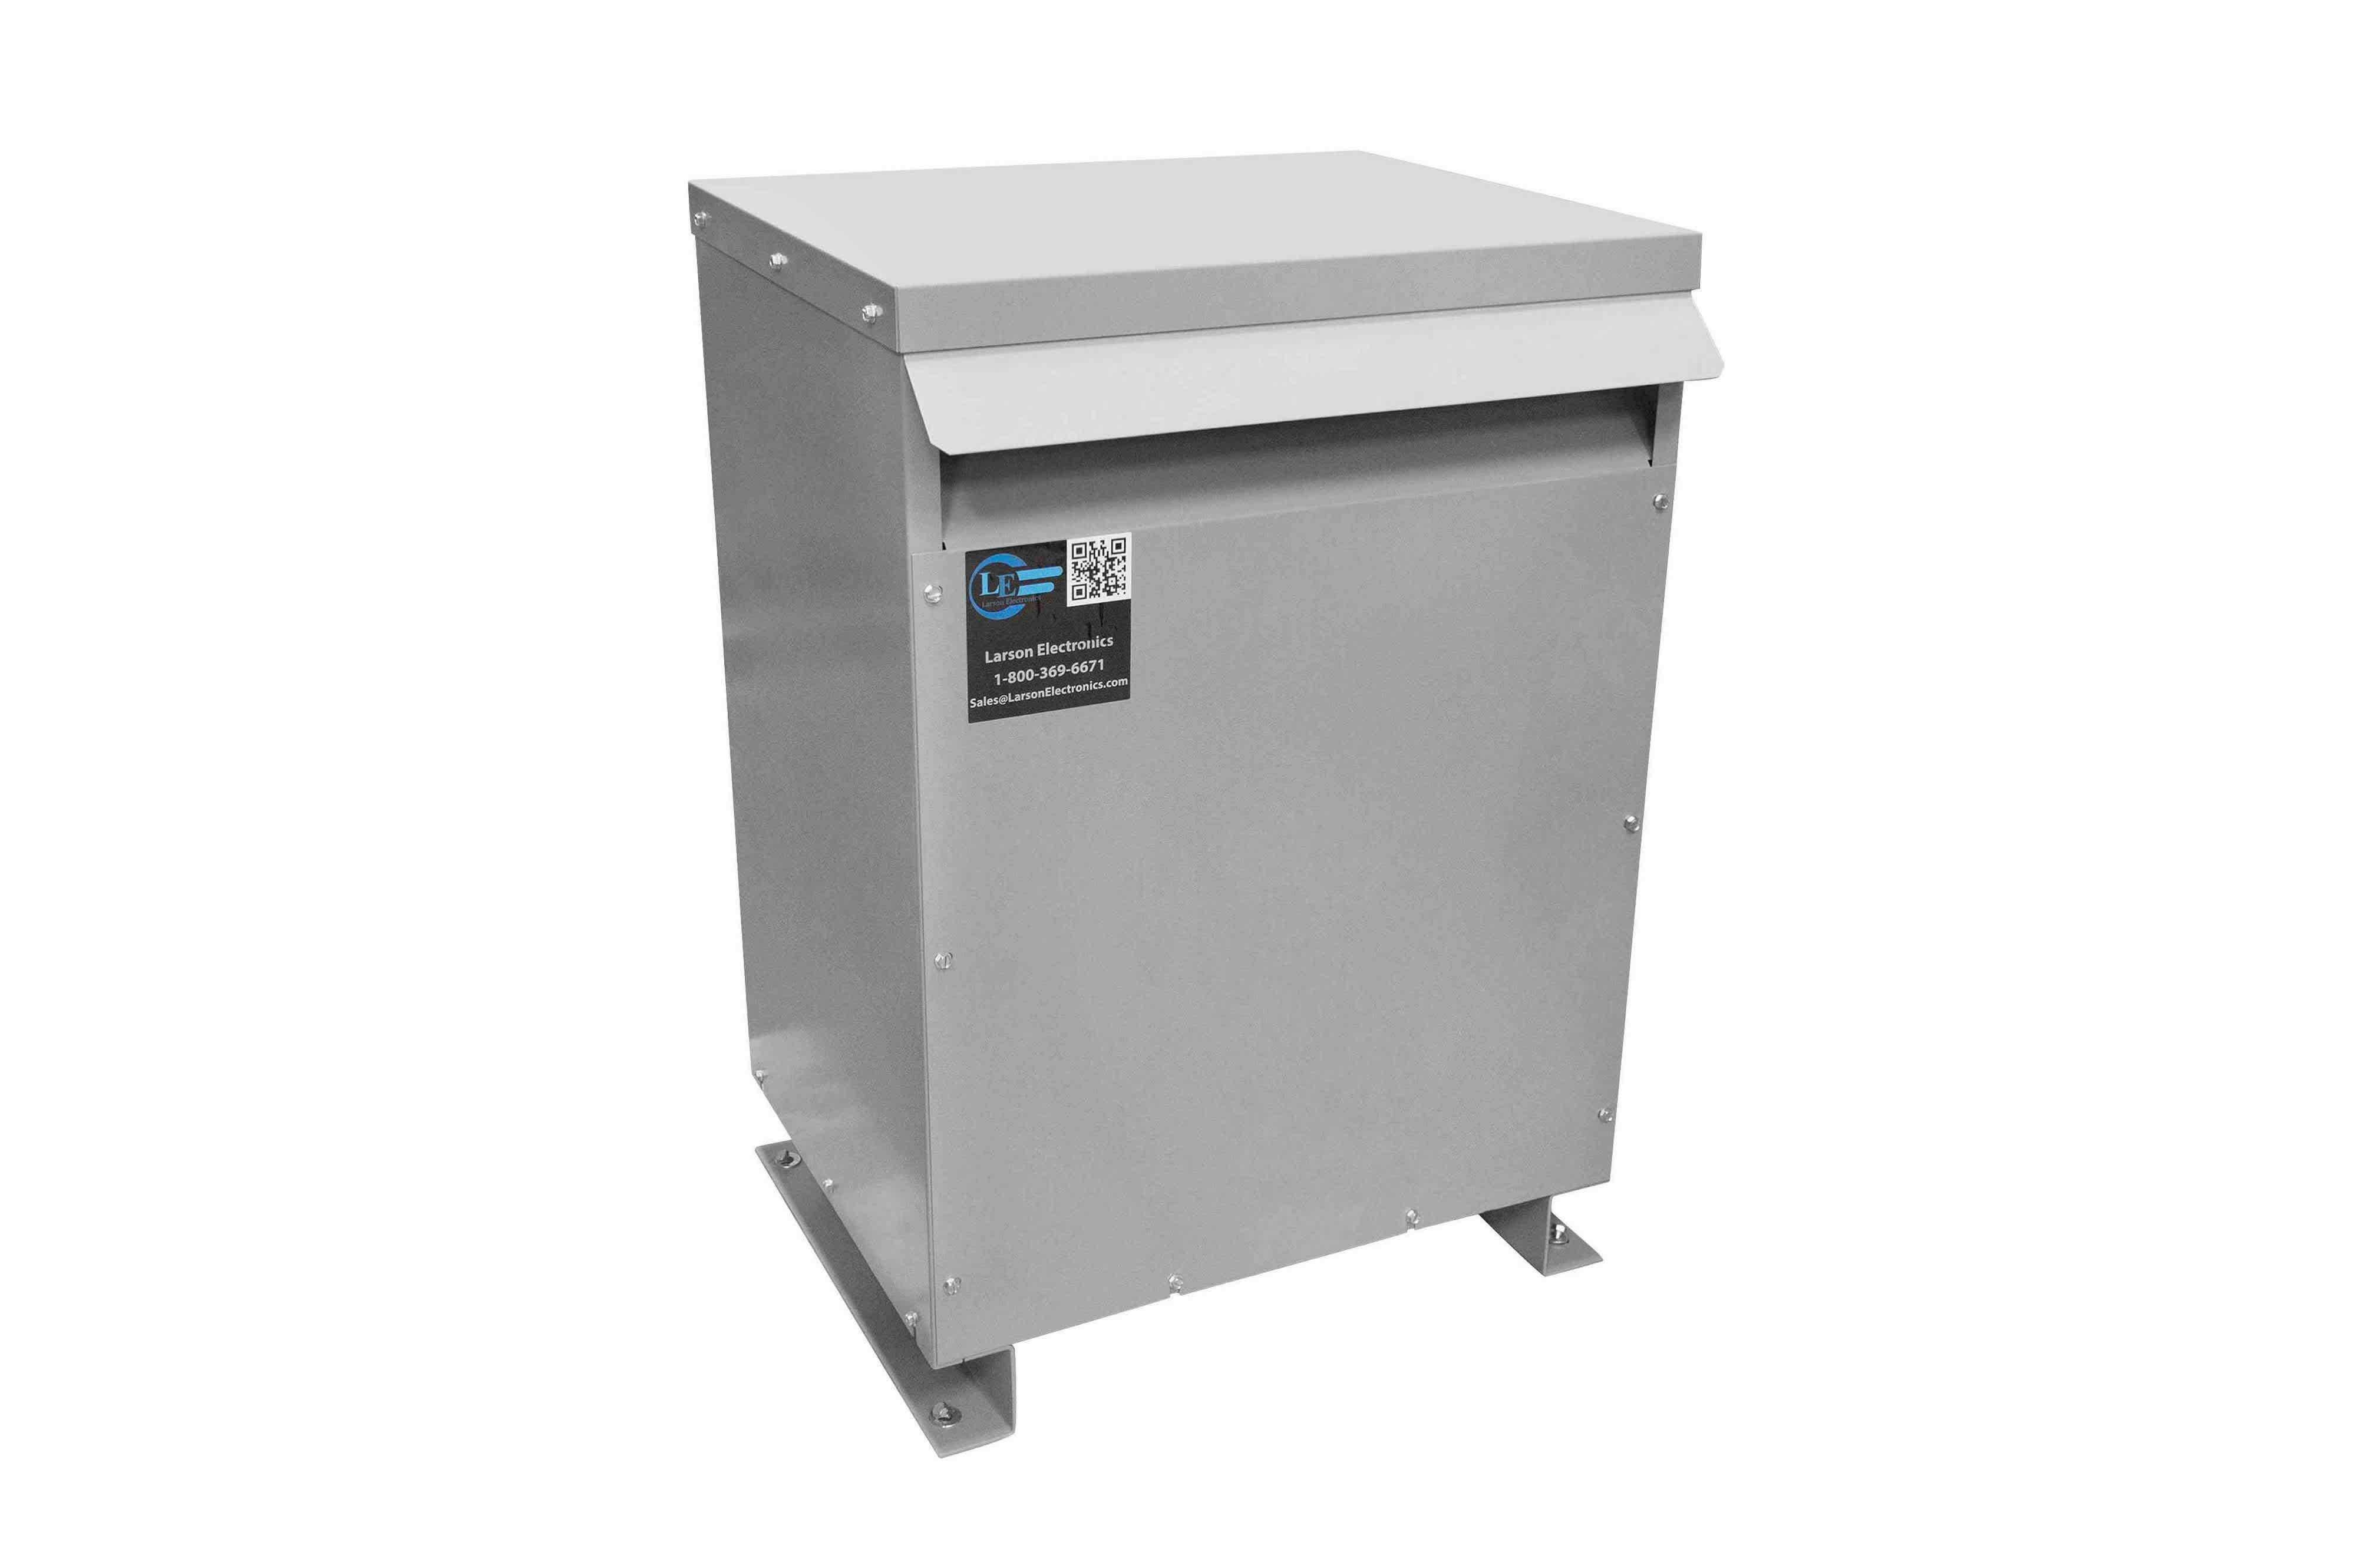 115 kVA 3PH Isolation Transformer, 480V Wye Primary, 240V Delta Secondary, N3R, Ventilated, 60 Hz